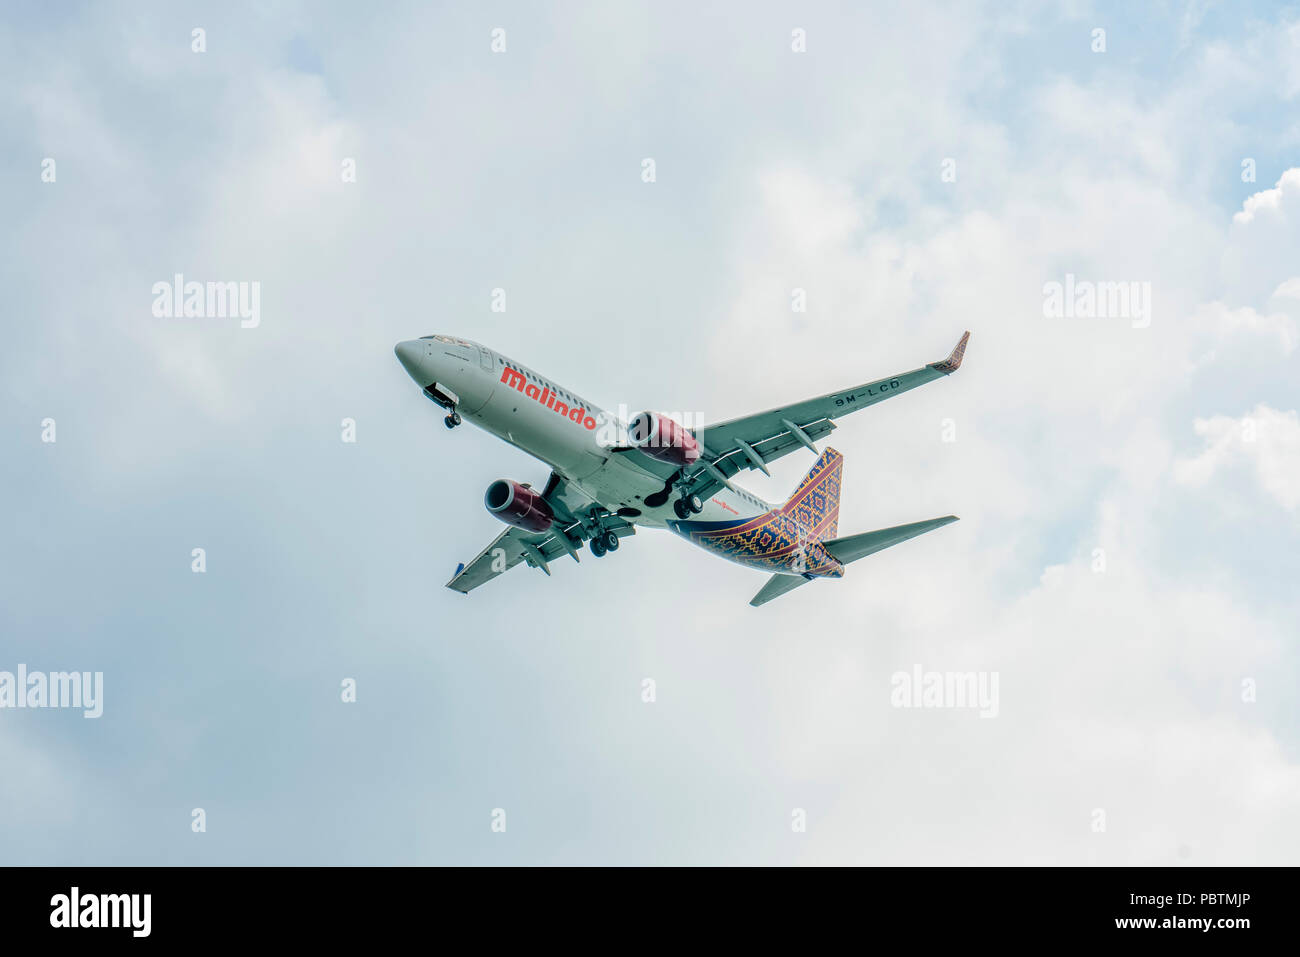 Singapore - June 03 2018: Airliner on final approach into Changi Airport - Stock Image